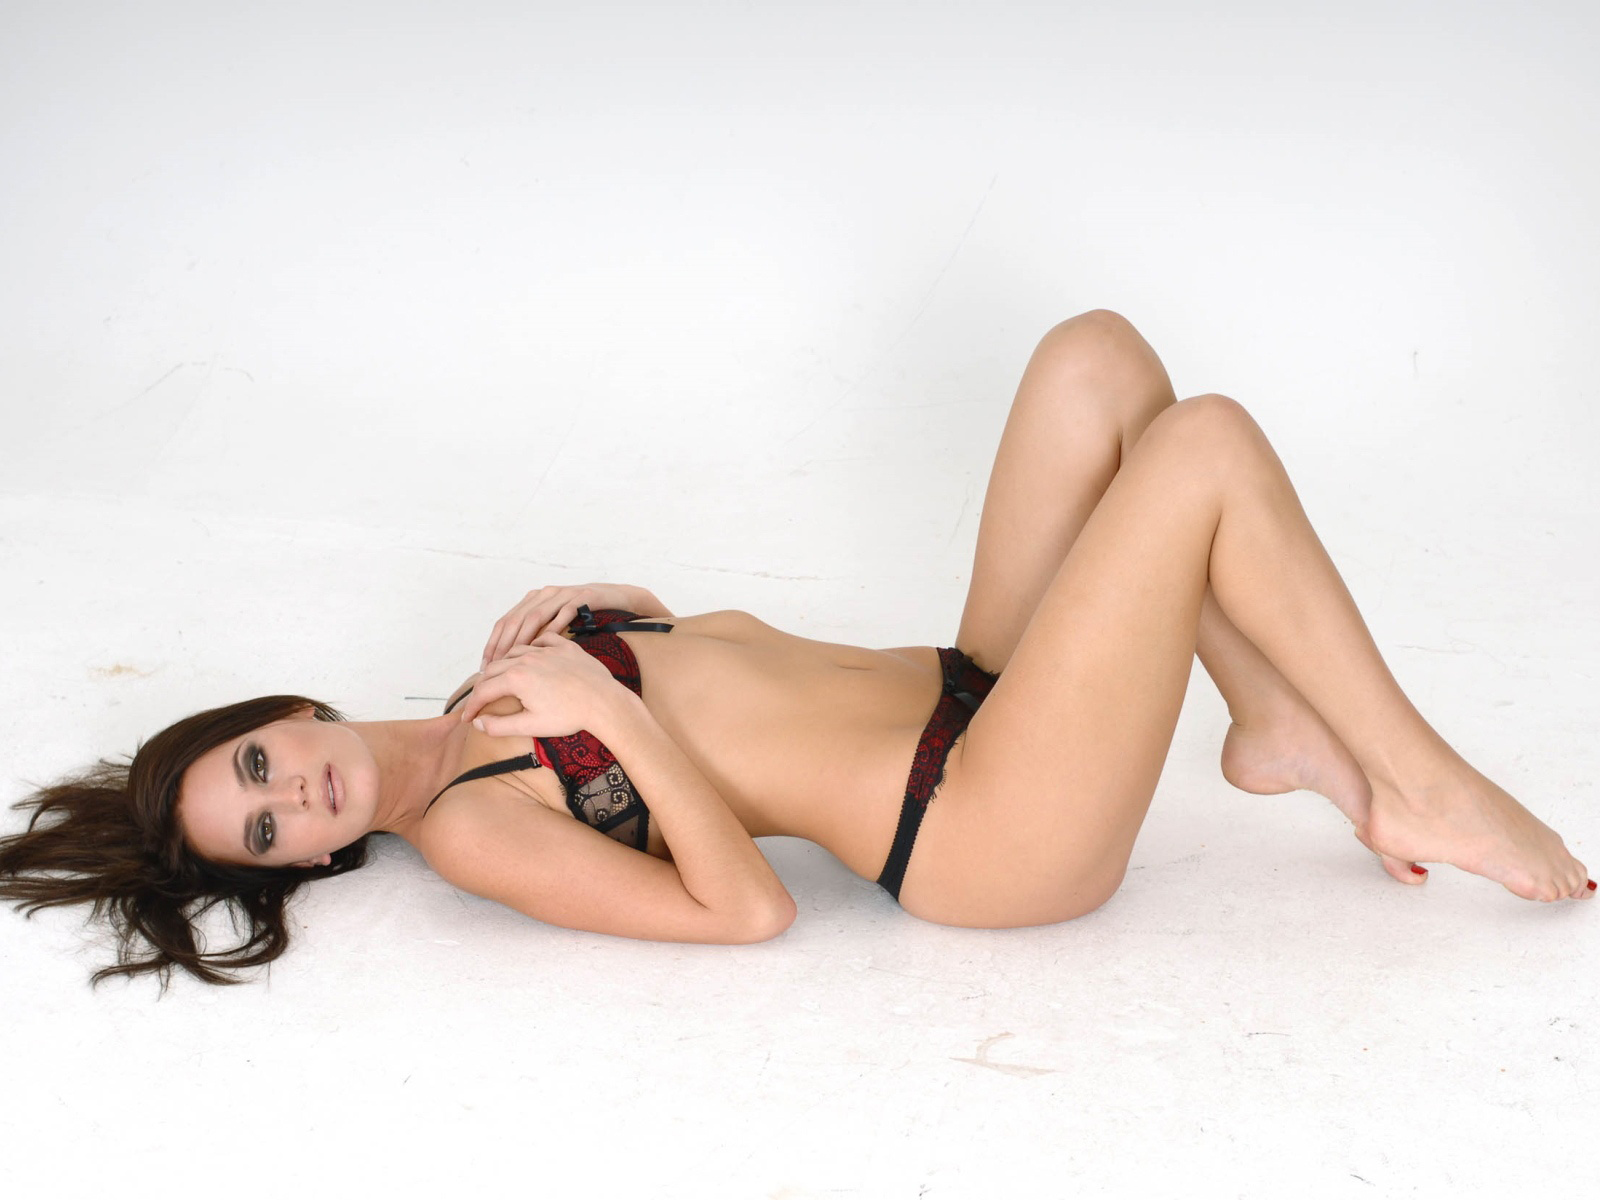 Red And Black Bra Top With Maqtching Panties